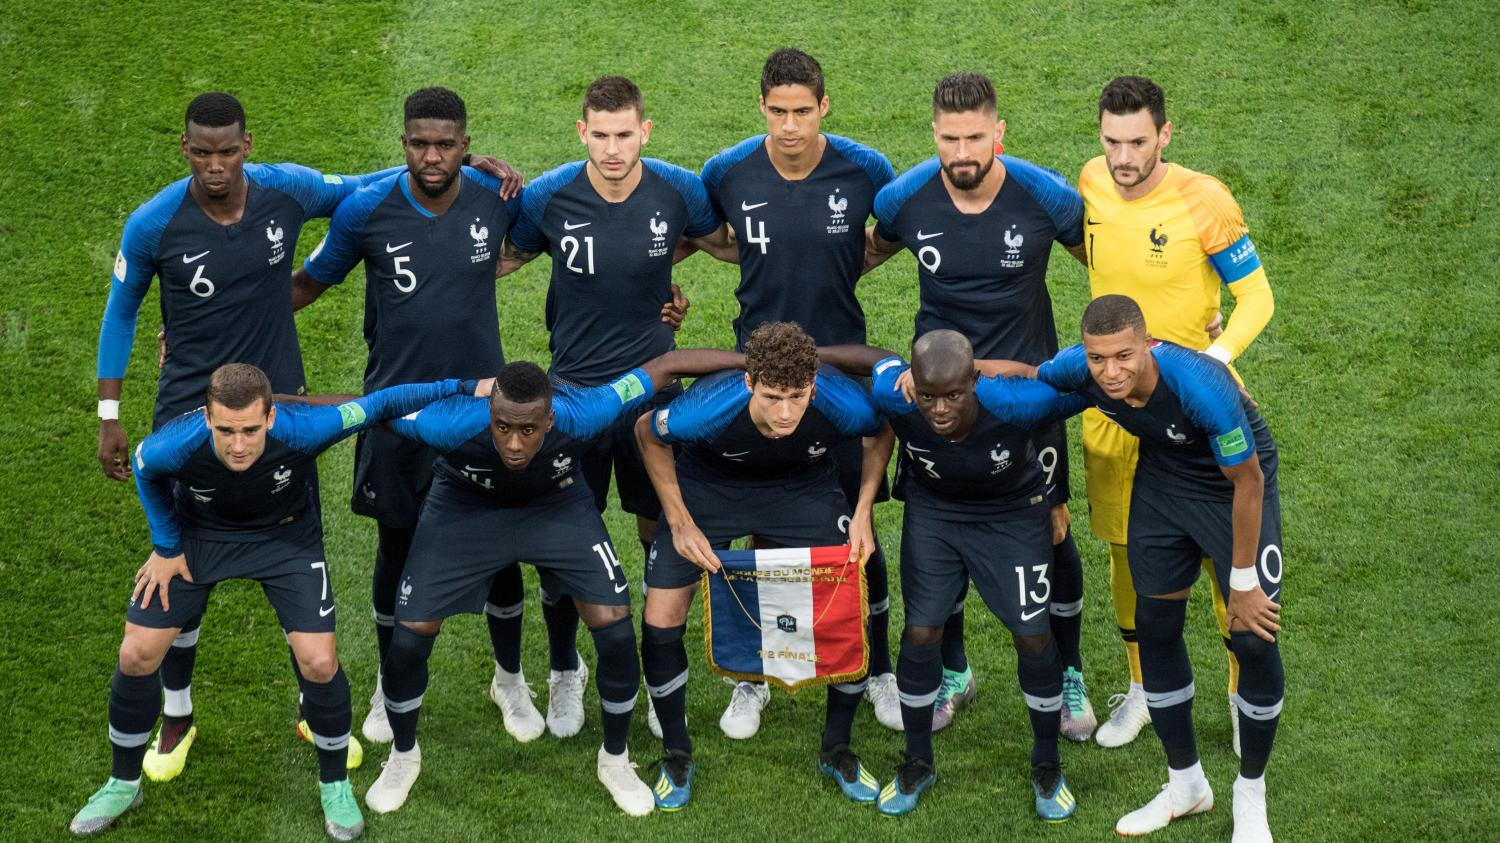 Direct coupe du monde 2018 franchement la france a t tr s chanceuse lance le premier - Coupe de france en direct france 2 ...